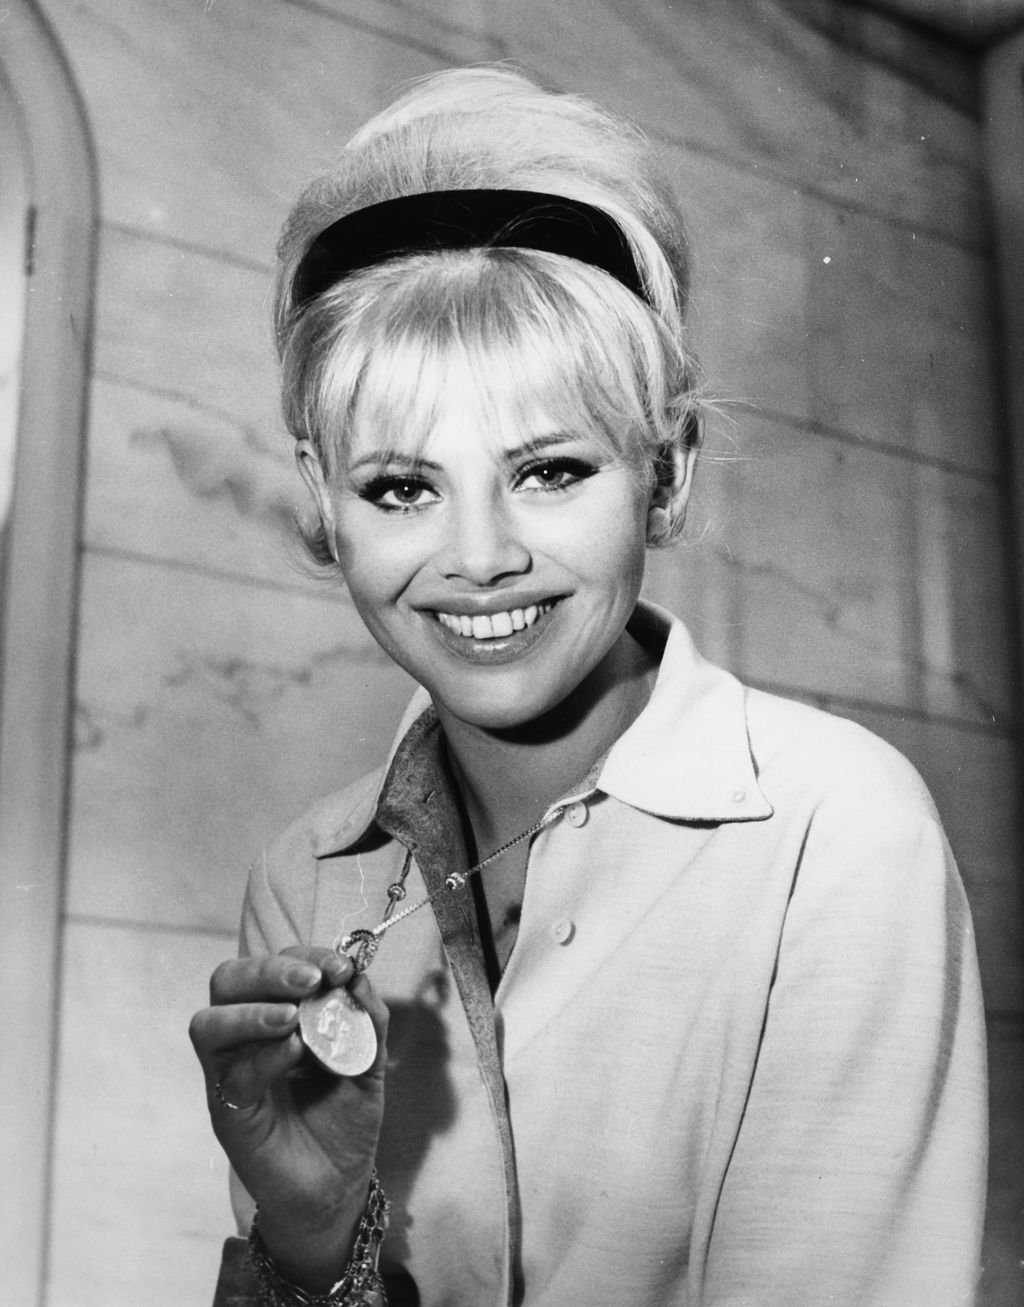 Portrait of actress Britt Ekland, soon to star in the film 'Those Magnificent Men and their Flying Machines', at a press conference at the Savoy Hotel, London, January 27th 1964. (Photo by Dennis Oulds/Central Press/Getty Images)